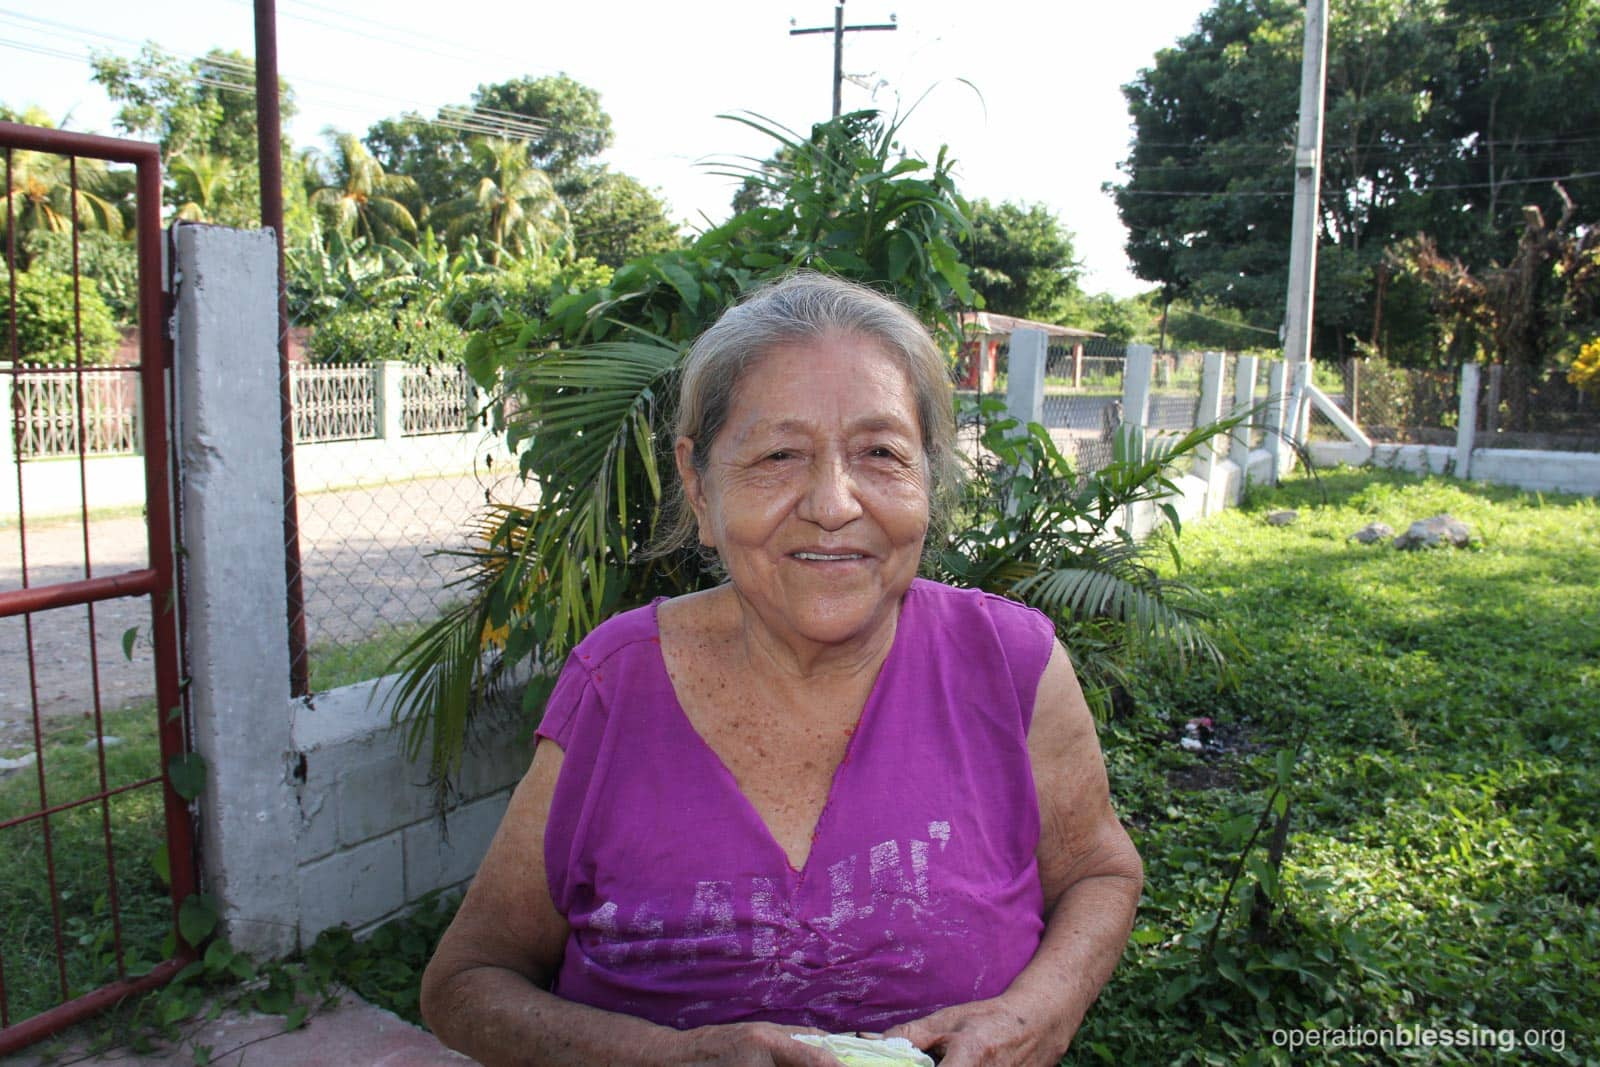 Ethel is back to work and good health thanks to medicine provided by donations to OBI's gift-in-kind program.